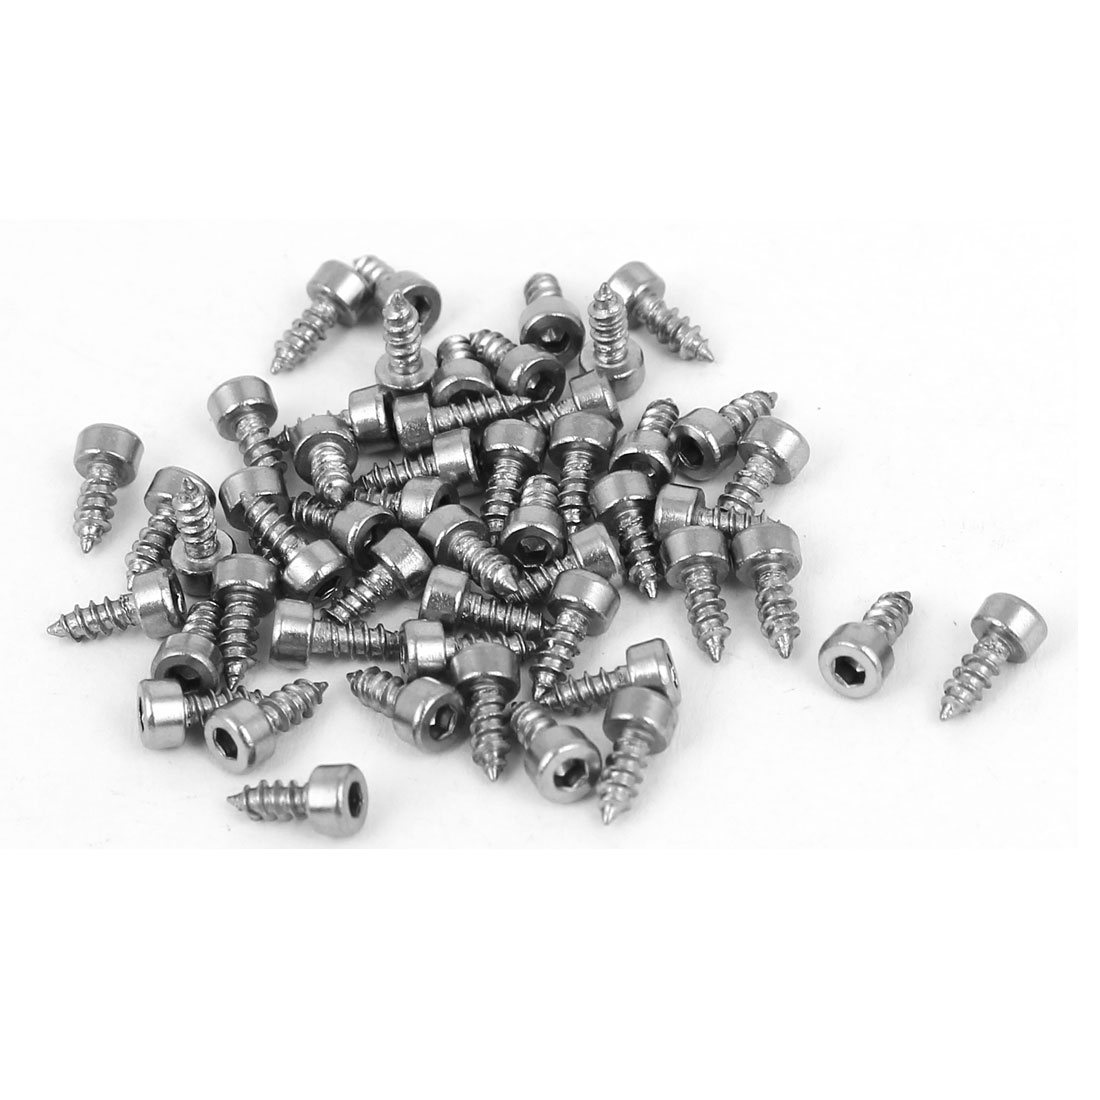 M2x5mm Stainless Steel Hex Drive Head Cap Self Tapping Drilling Screws 50pcs